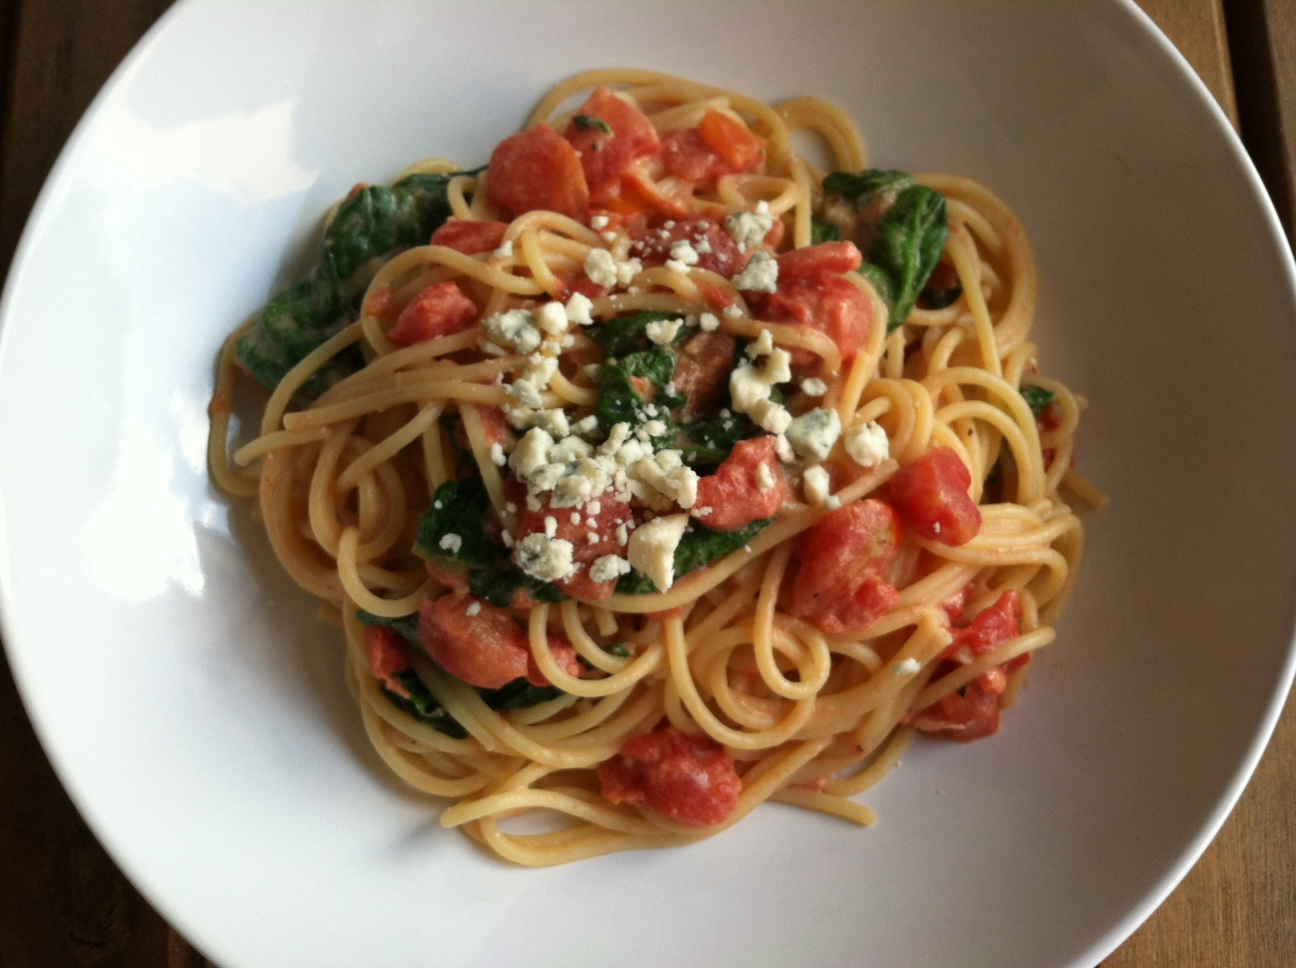 ... of Home Cooking: Recipe Swap: Pasta with Tomato-Blue Cheese Sauce